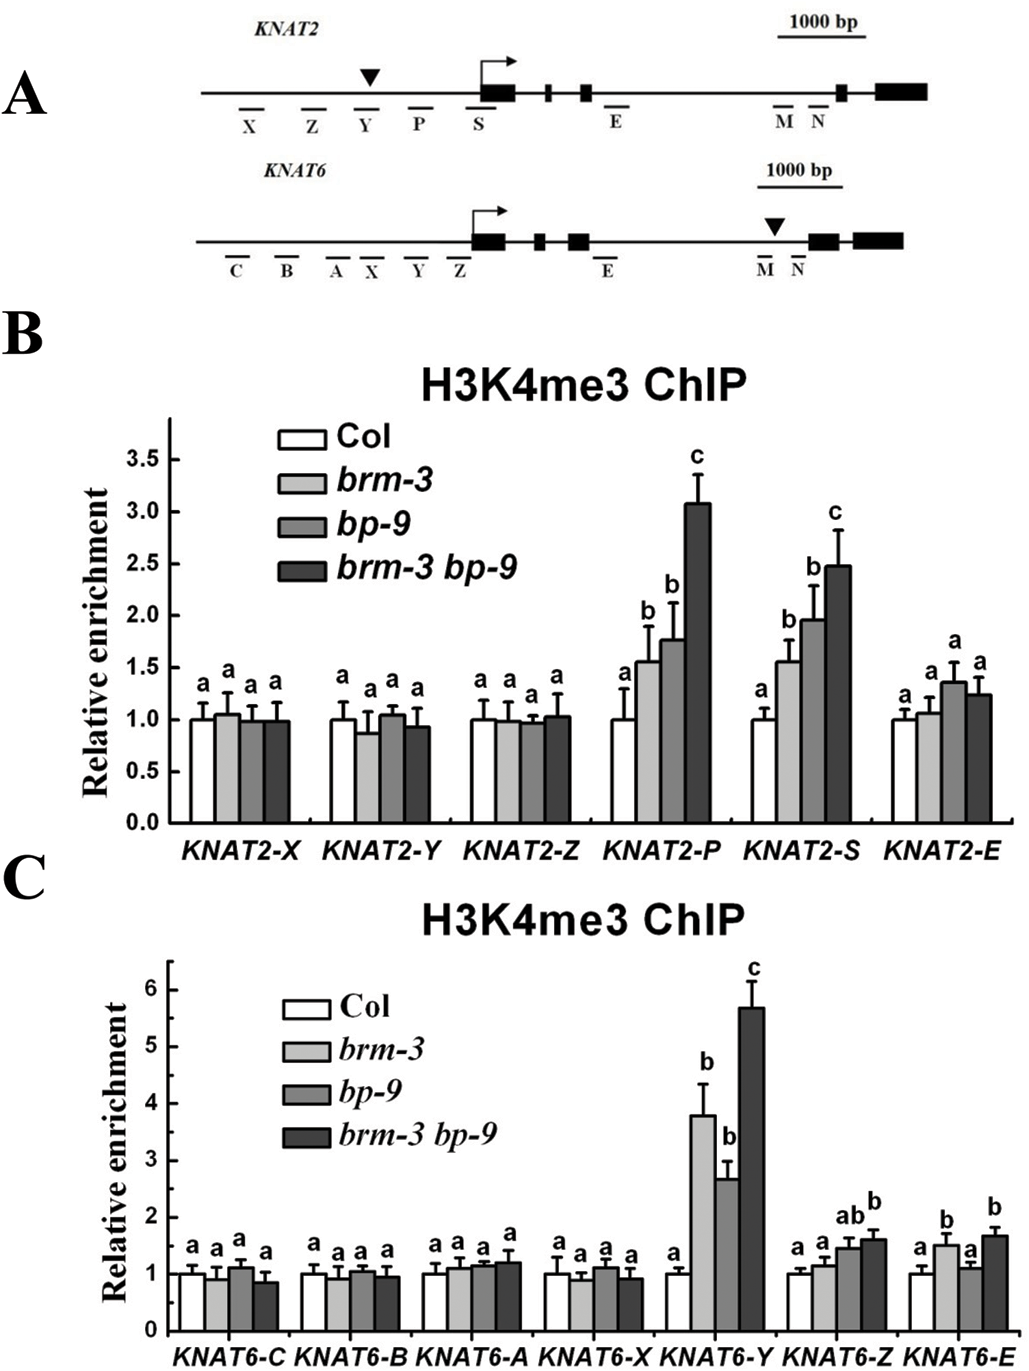 BRM and BP decrease H3K4Me3 levels of <i>KNAT2</i> and <i>KNAT6</i> in inflorescences.